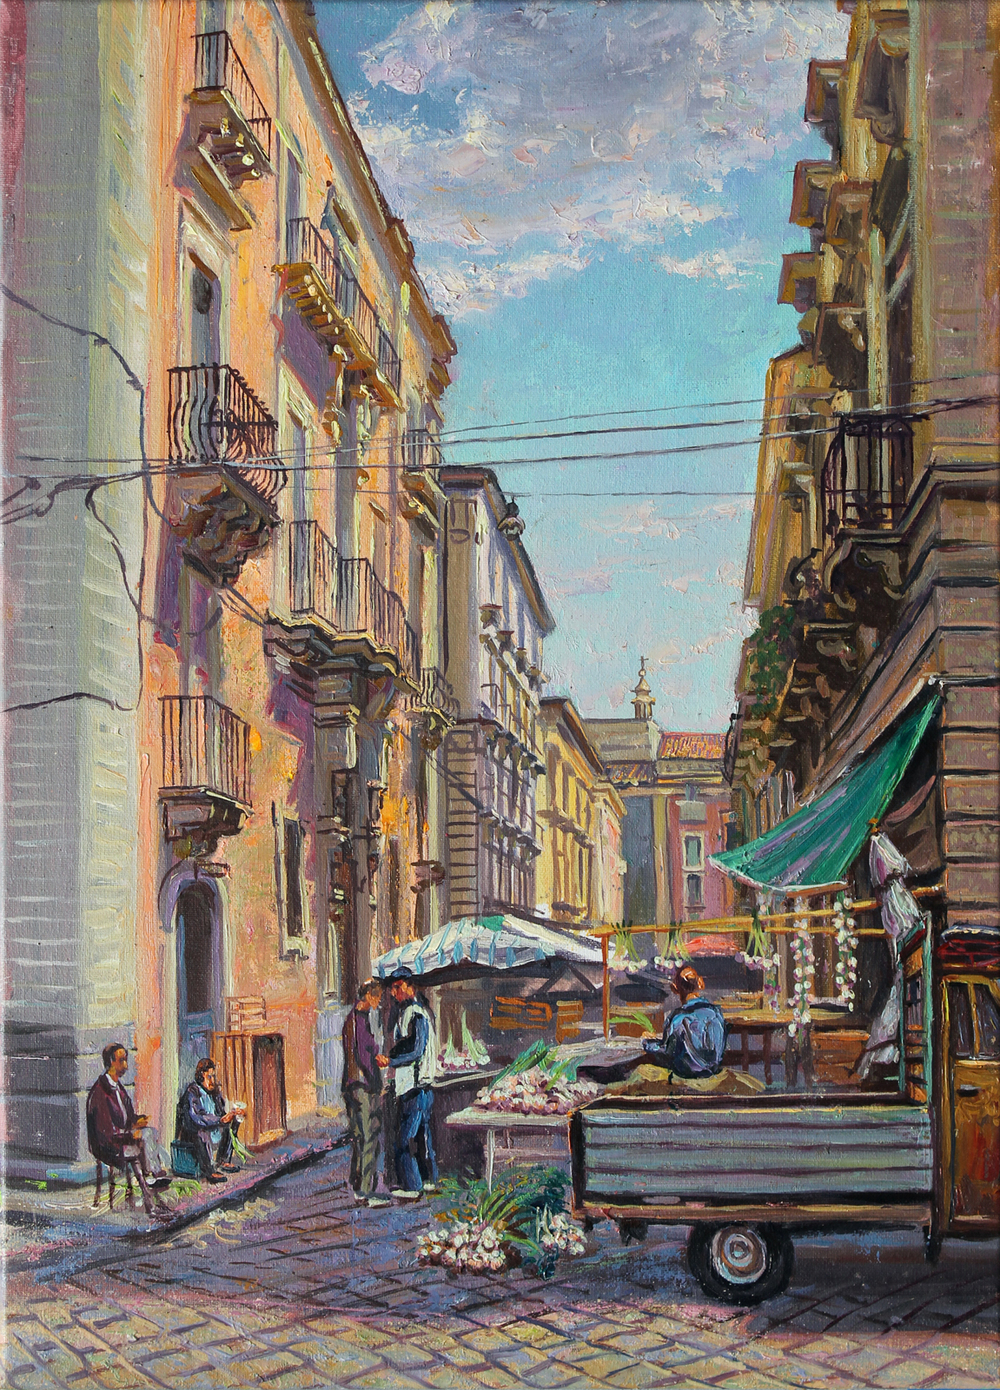 Garlic Vendors in Catania, Sicily